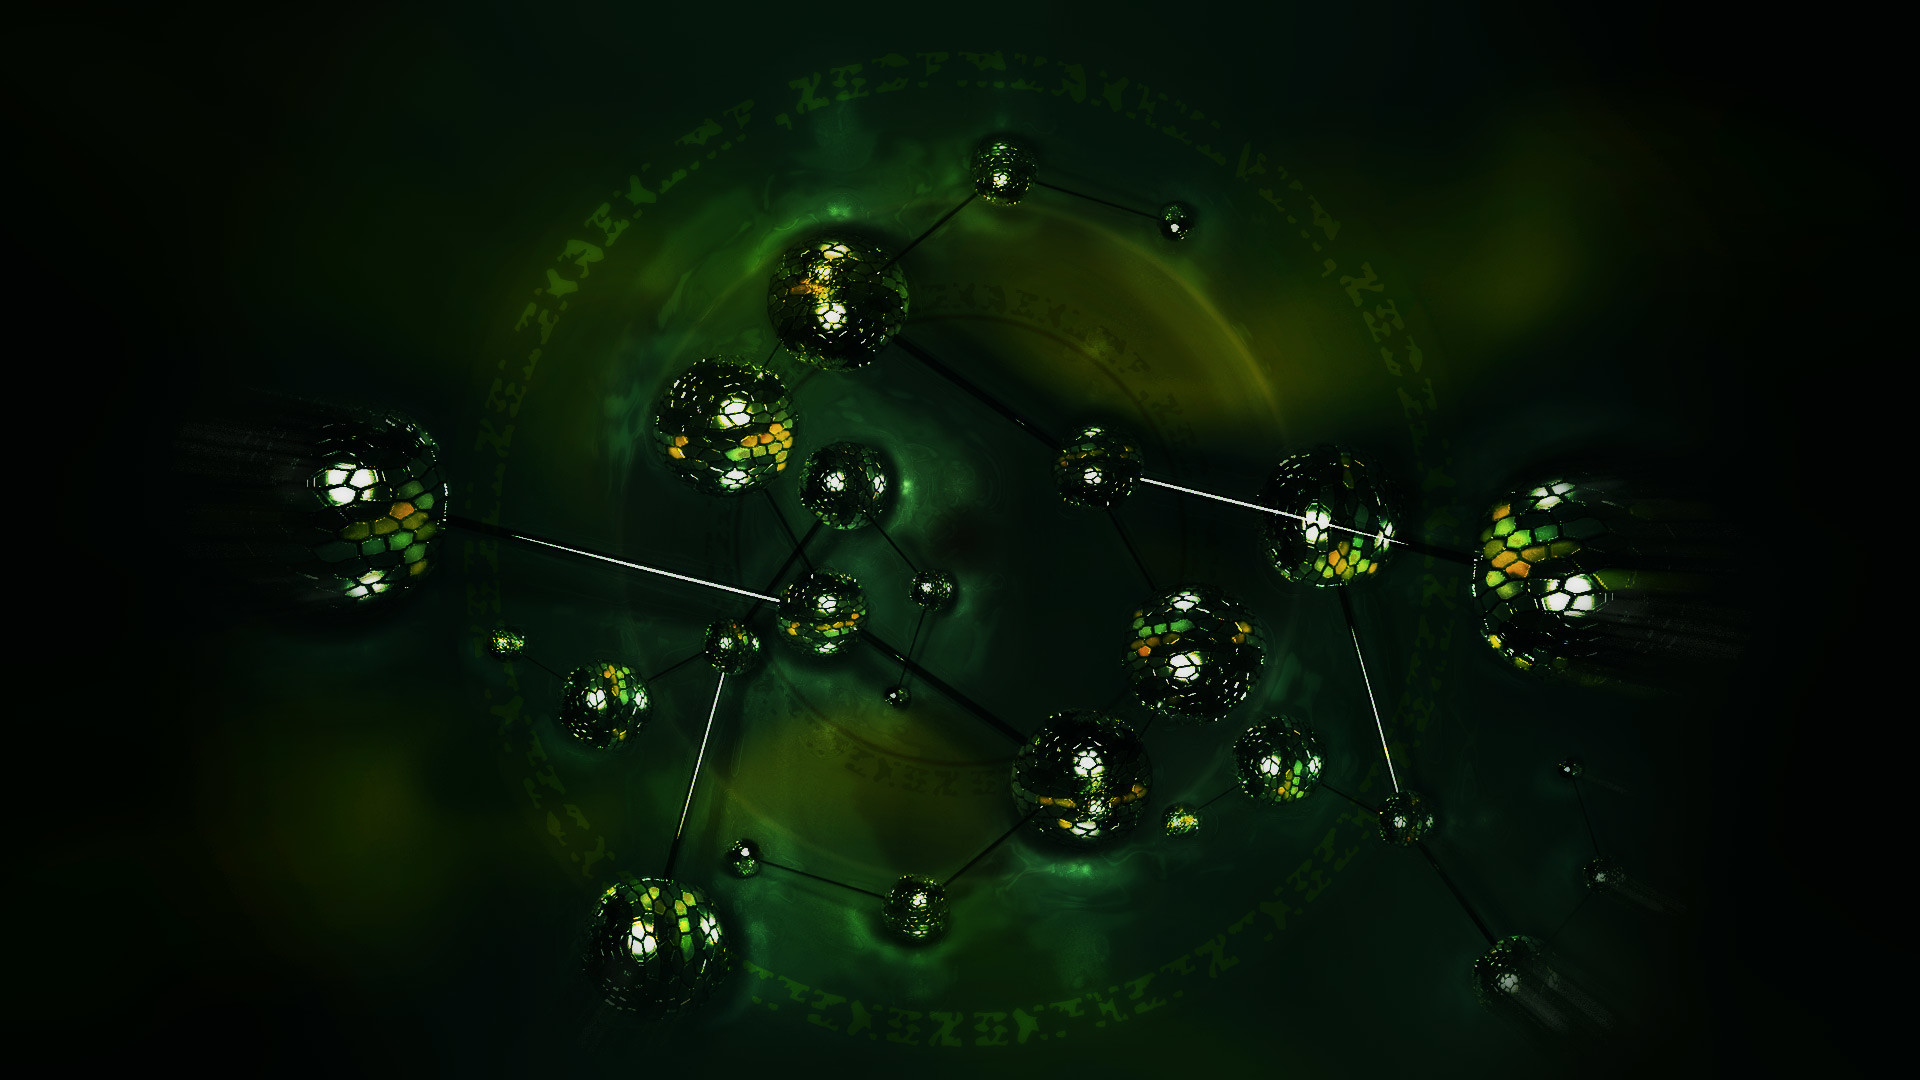 Darkflame (2013); HD chrome 3D molecules cosmos abstract wallpaper 1920×1080